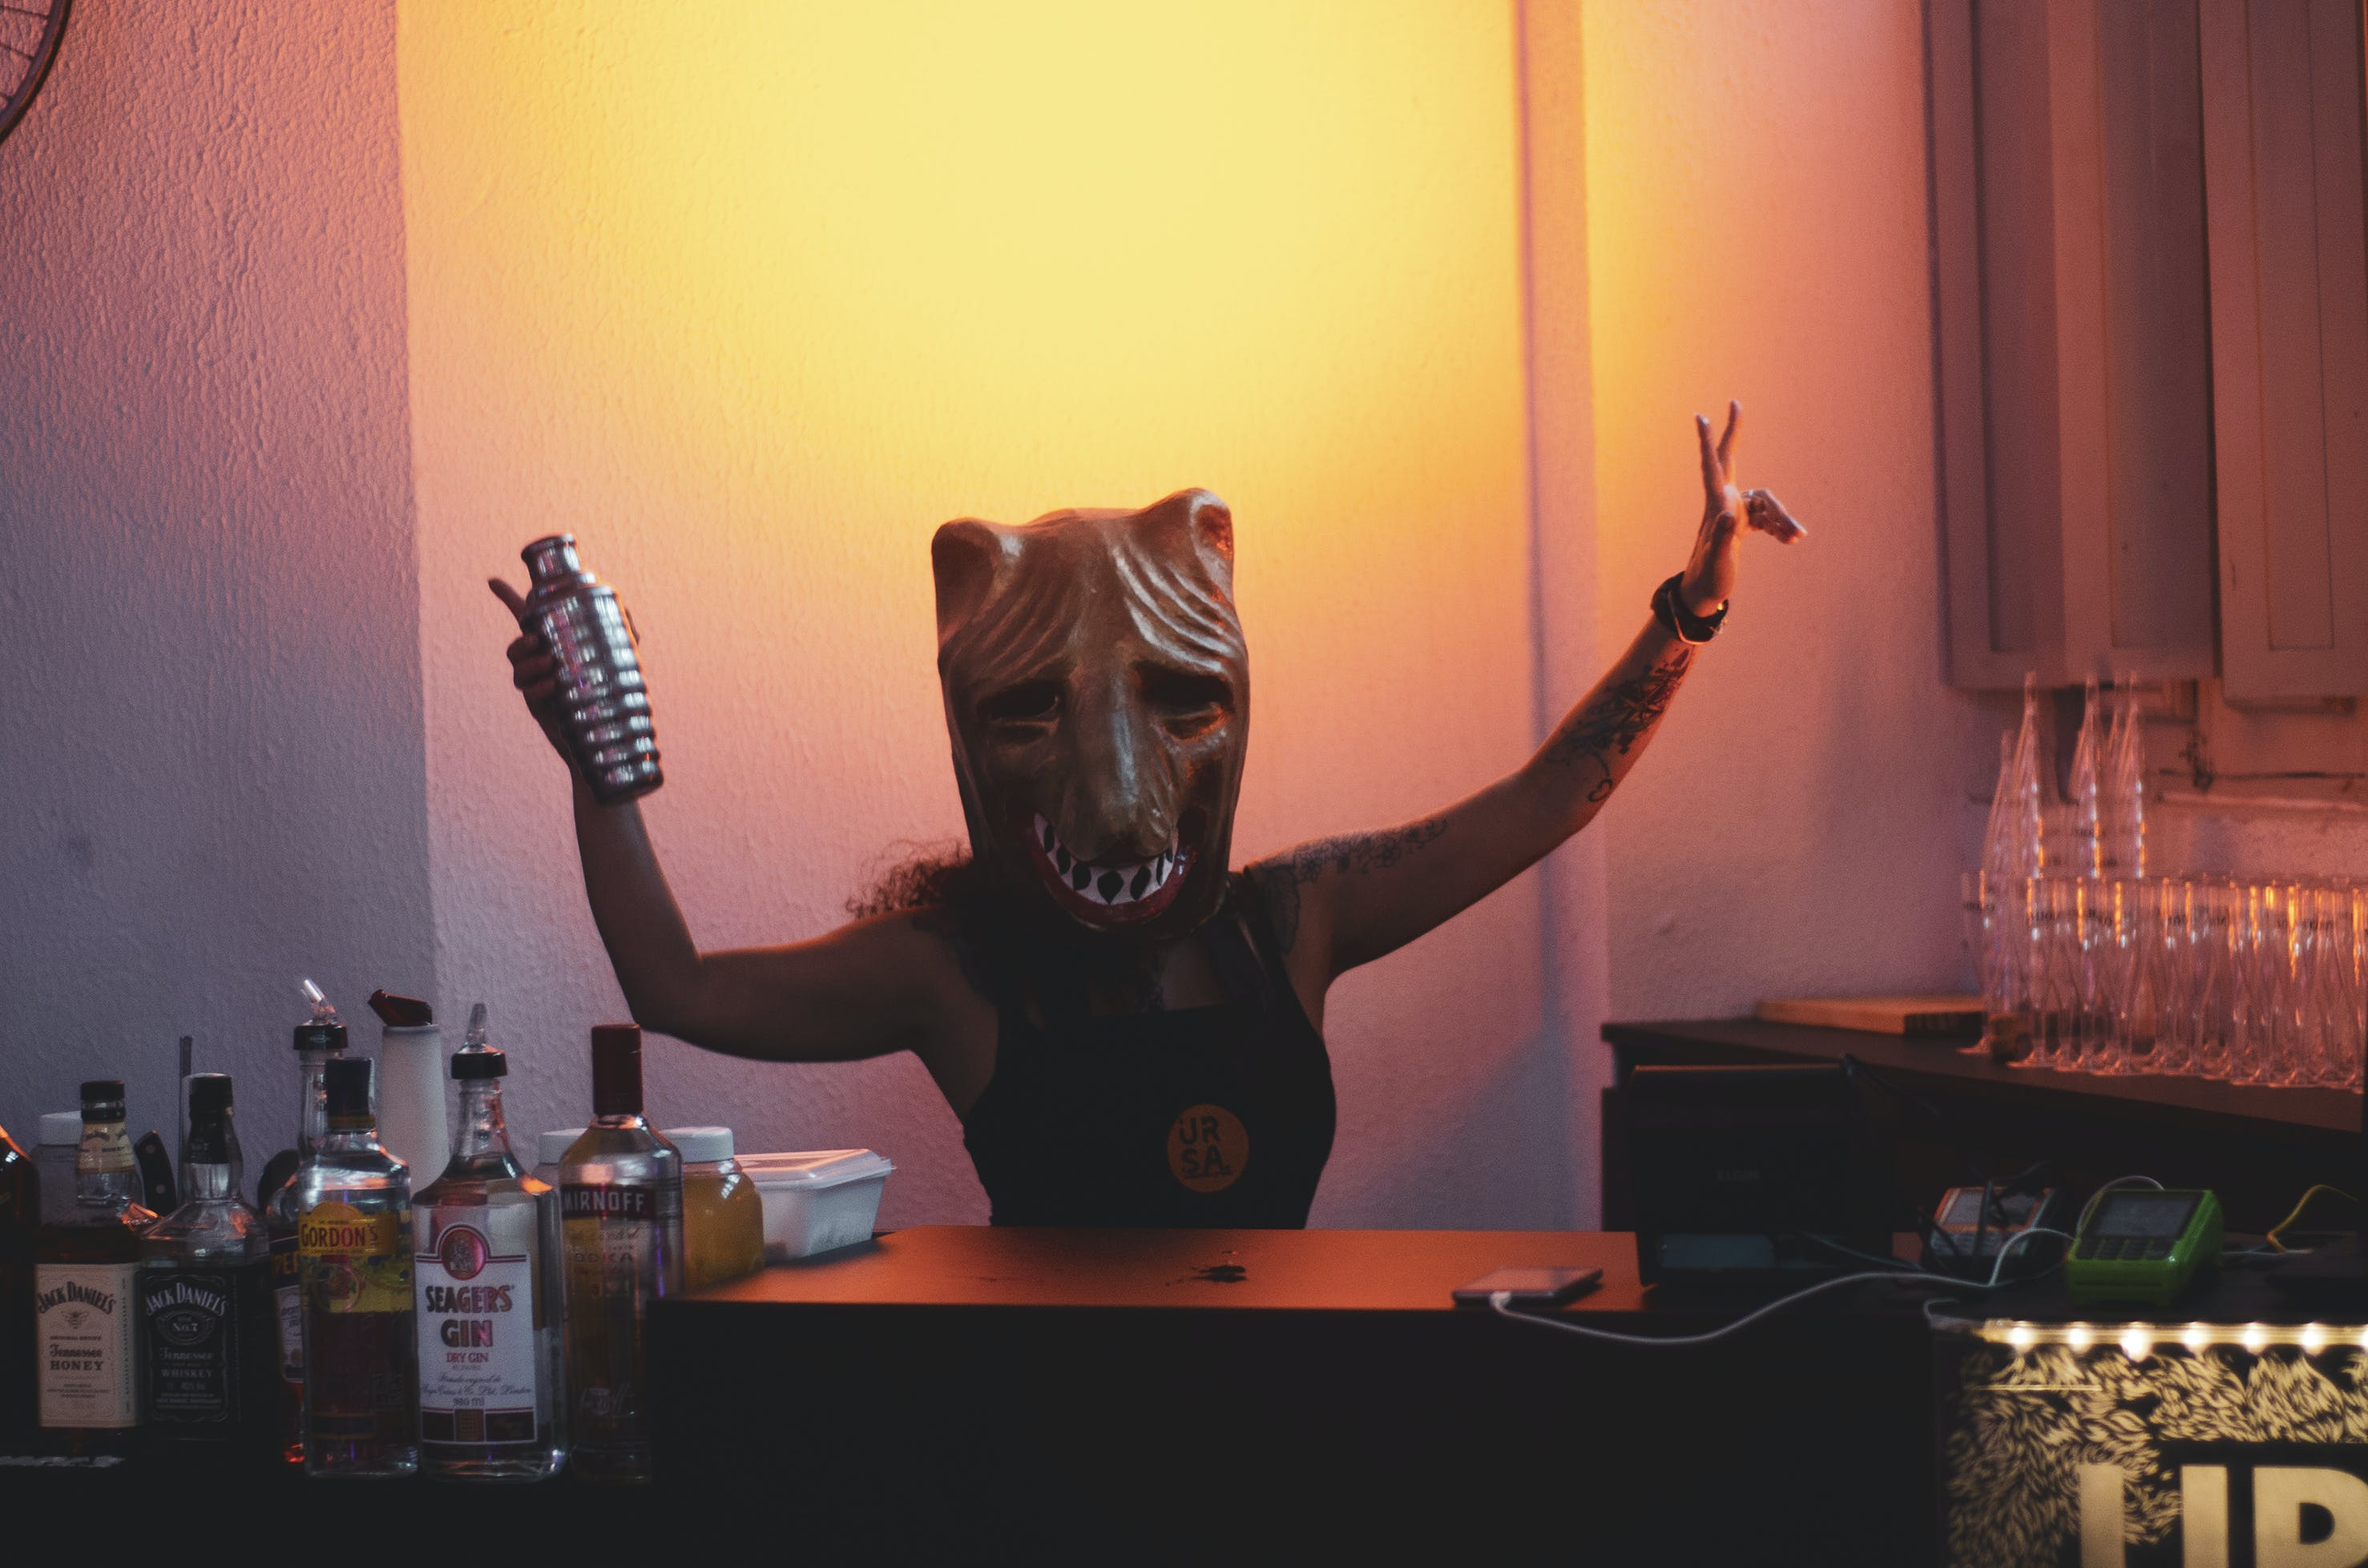 Person Wearing Mask Holding Cocktail Shaker